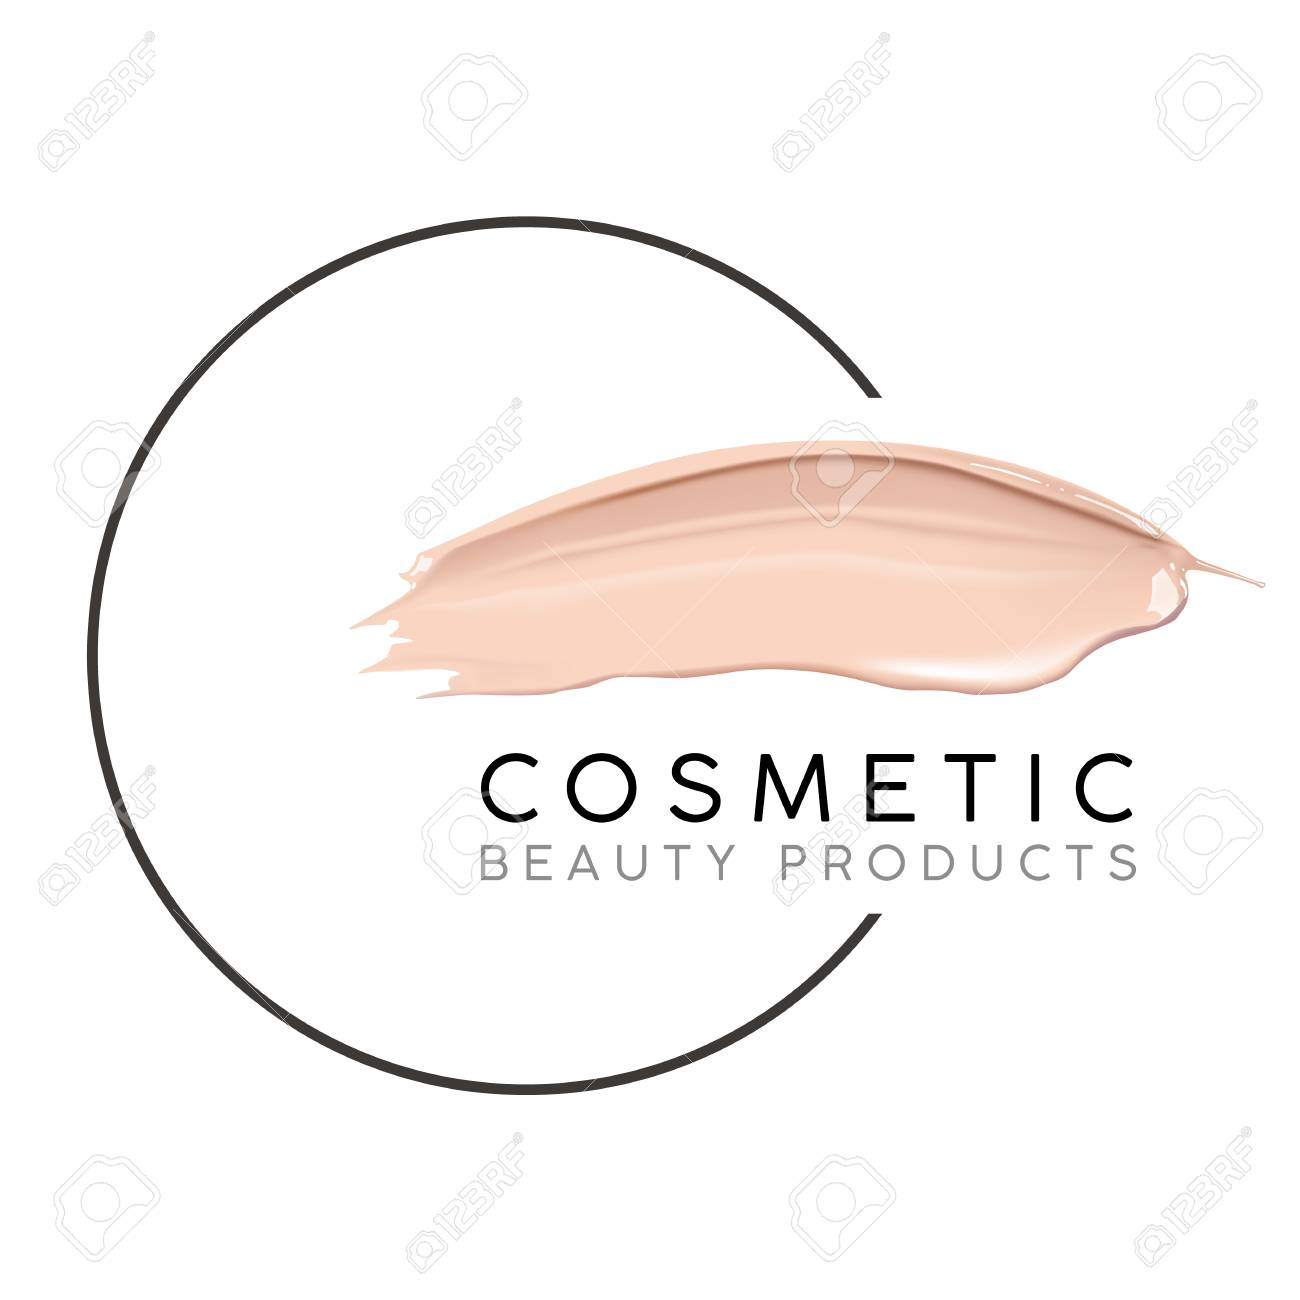 makeup design template with place for text cosmetic logo concept